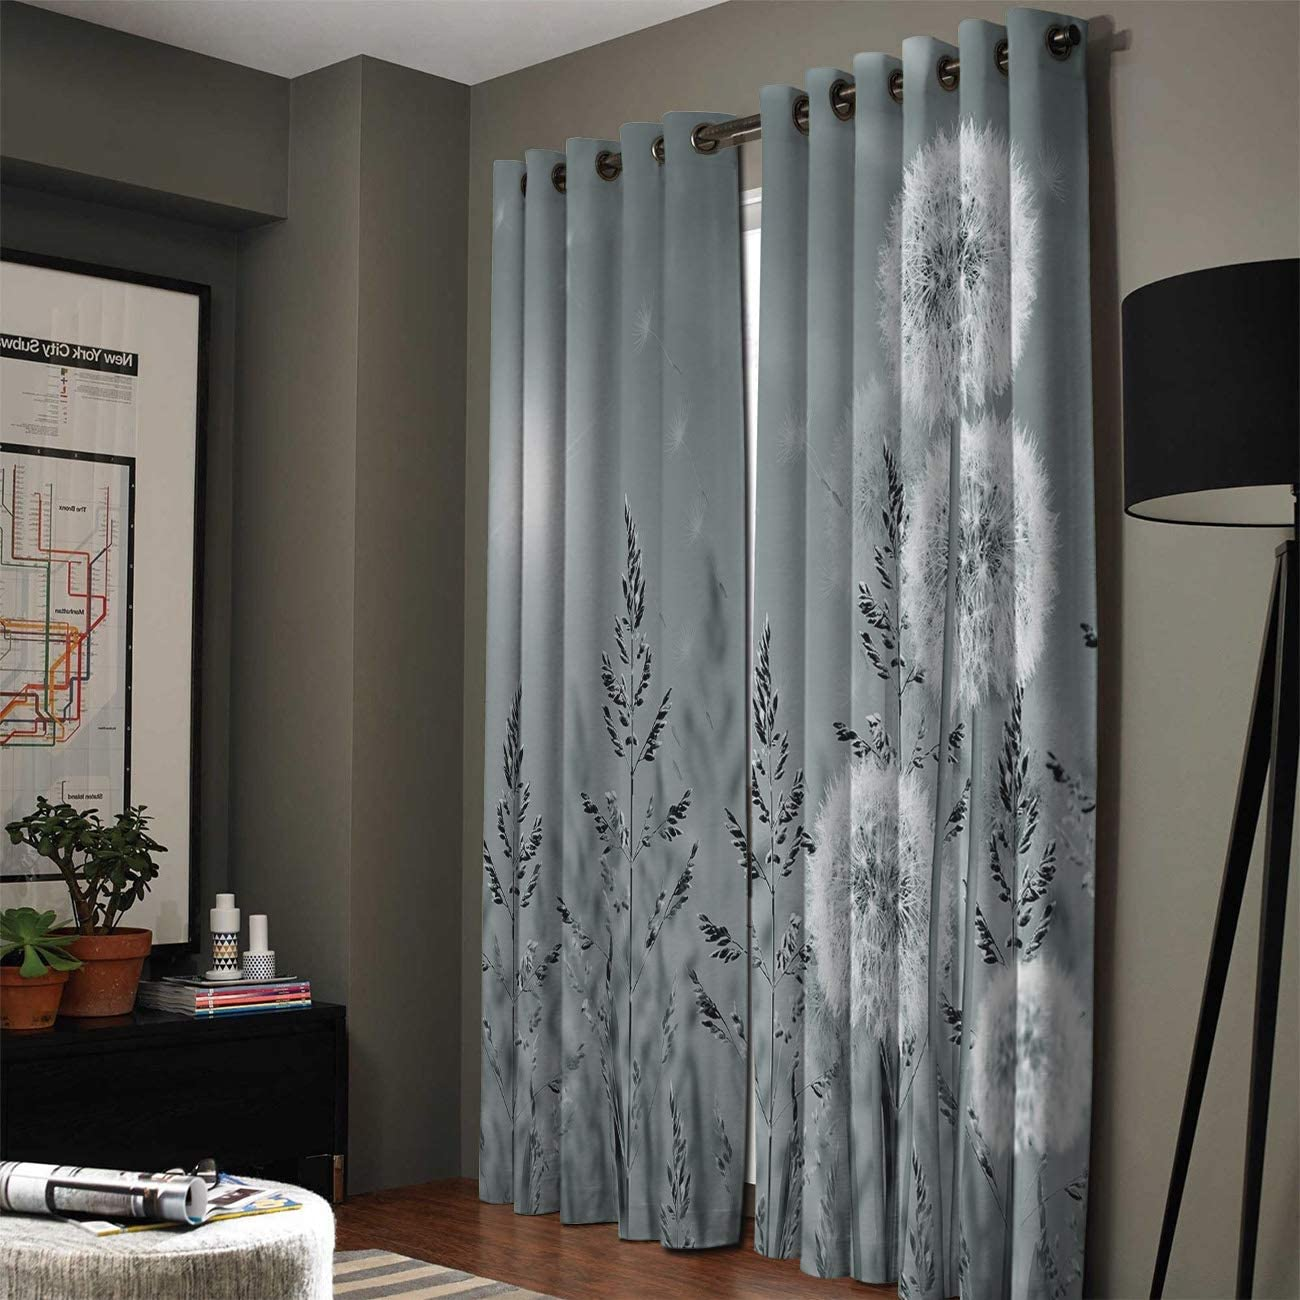 wanxinfu 2 Panel Kitchen Cafe Curtains, Dandelions Sunlight Filtering Nature Air Through, Home Decor Window Covering Tier Curtains for Bedroom Living Room 104W x 96L inch